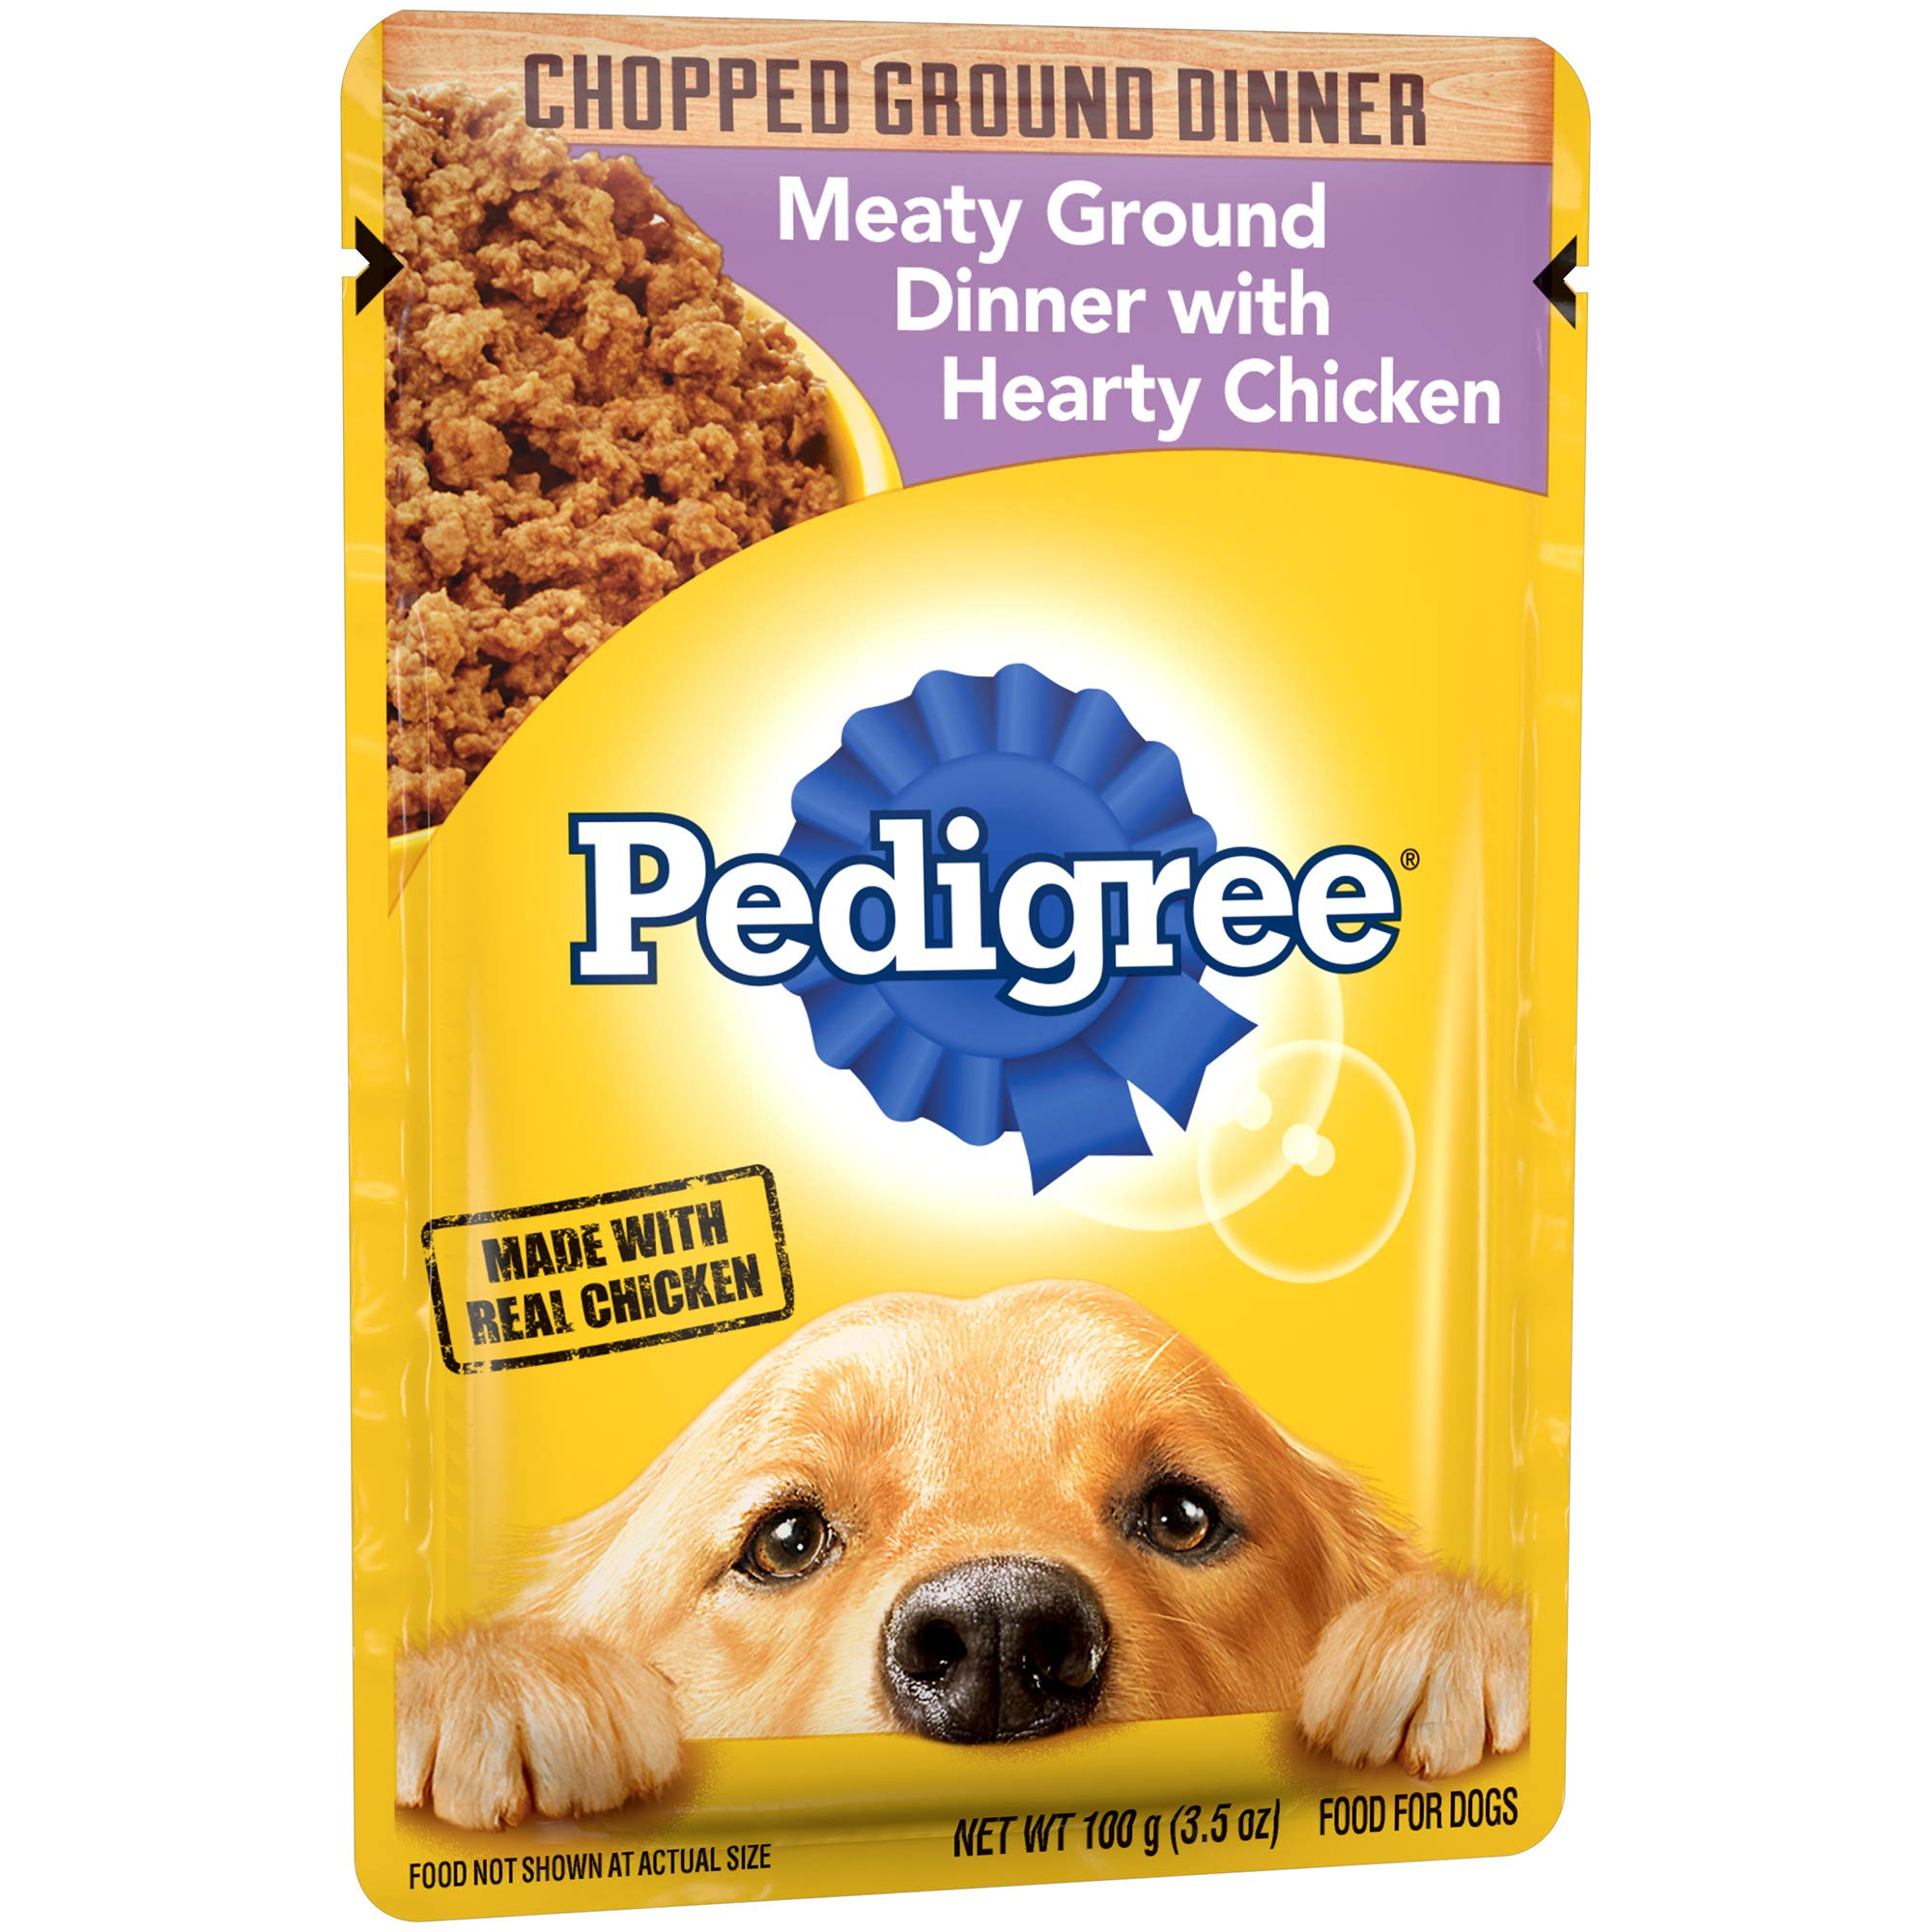 Pedigree Chopped Meaty Ground Dinner Hearty Chicken Adult Wet Dog Food, (16) 3.5 oz. Pouches